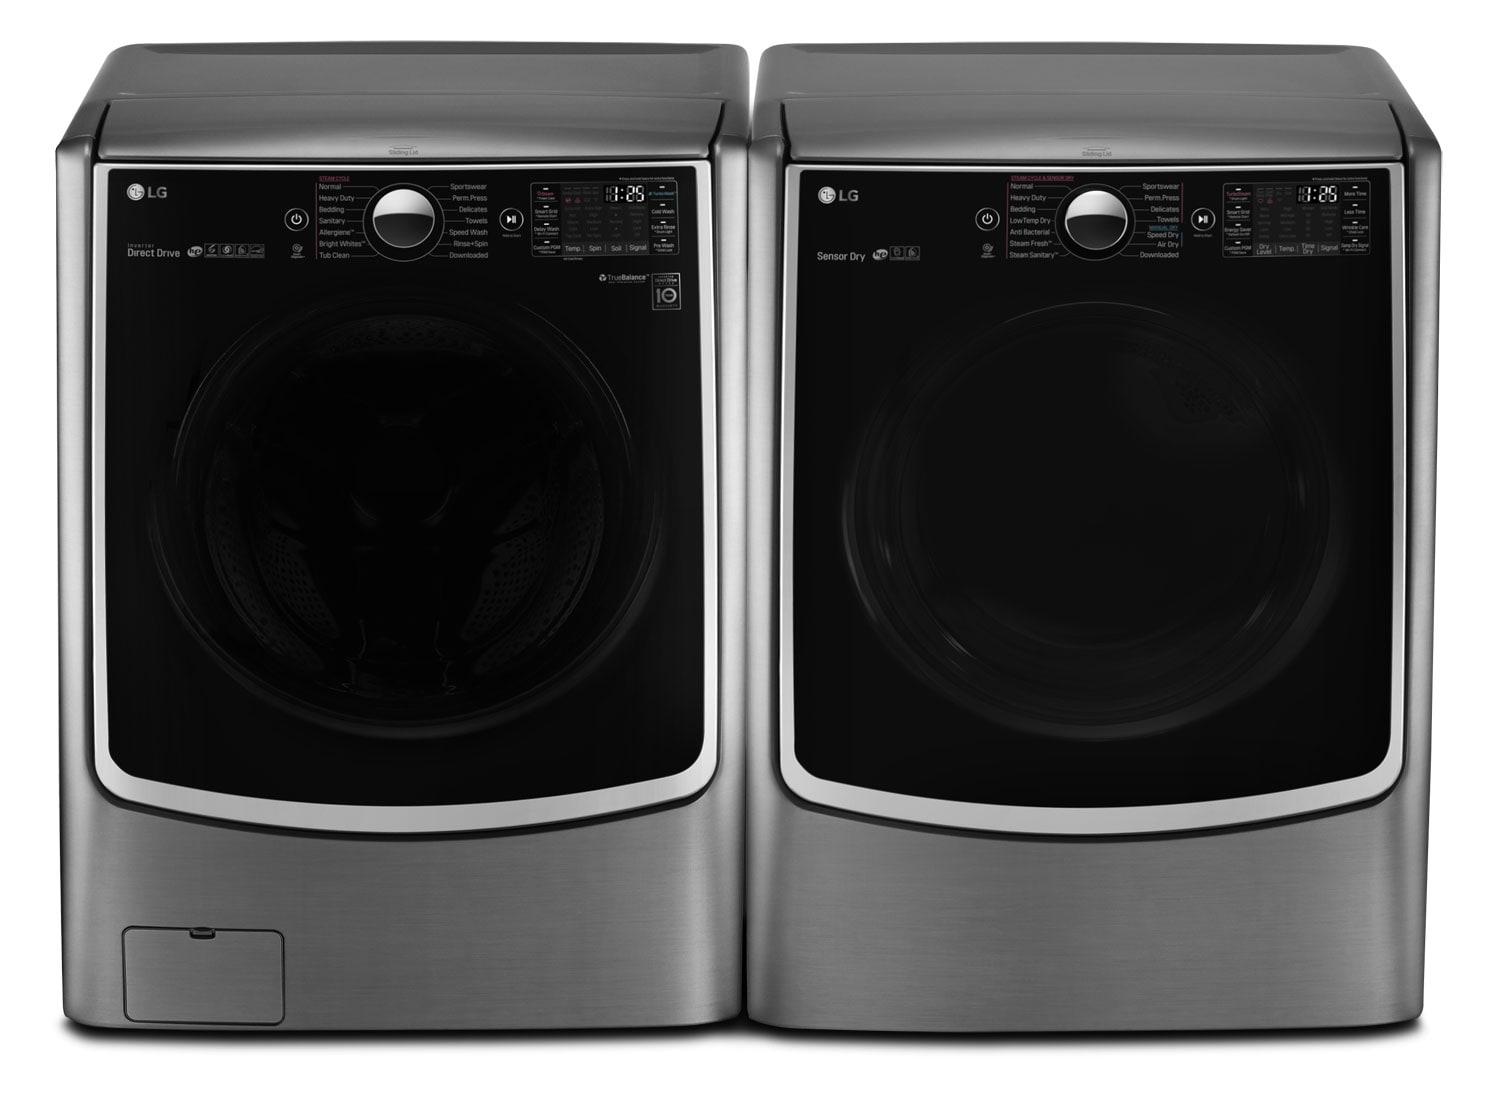 Washers and Dryers - LG 5.2 Cu. Ft. Front-Load Steam® Washer and 7.4 Cu. Ft. Gas Dryer - Graphite Steel